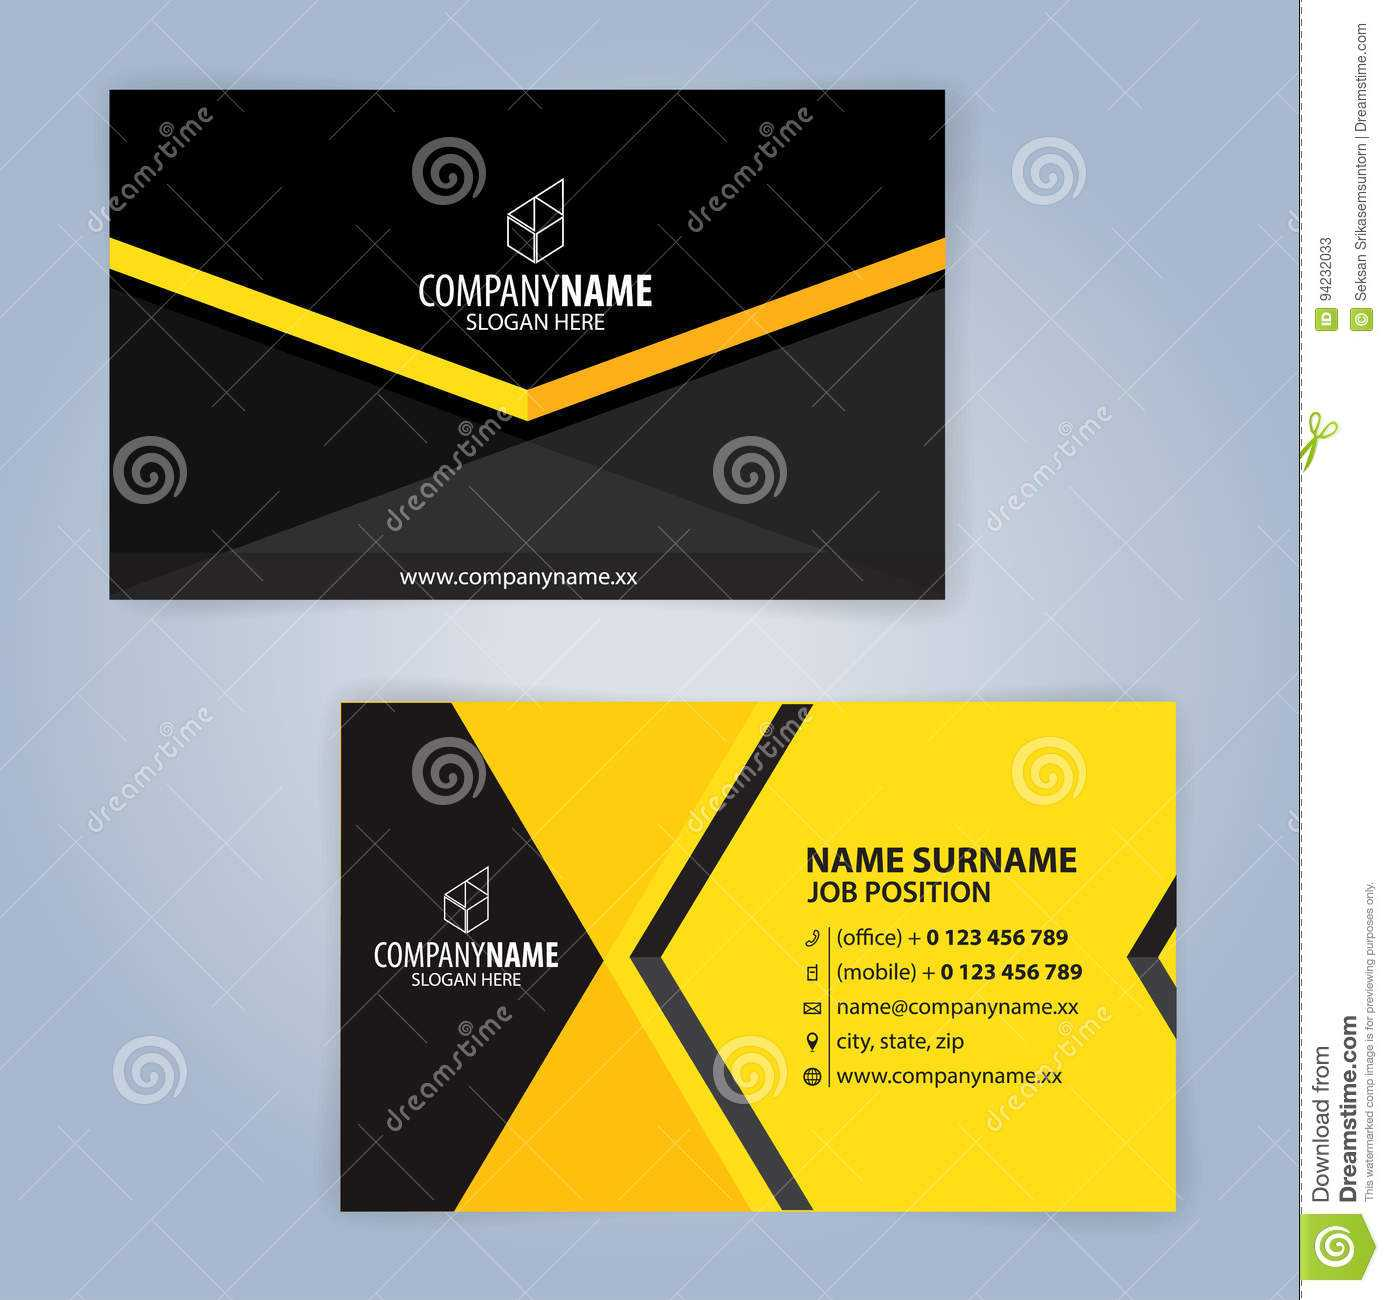 Business Card Template. Yellow And Black Stock Vector Intended For Template For Calling Card